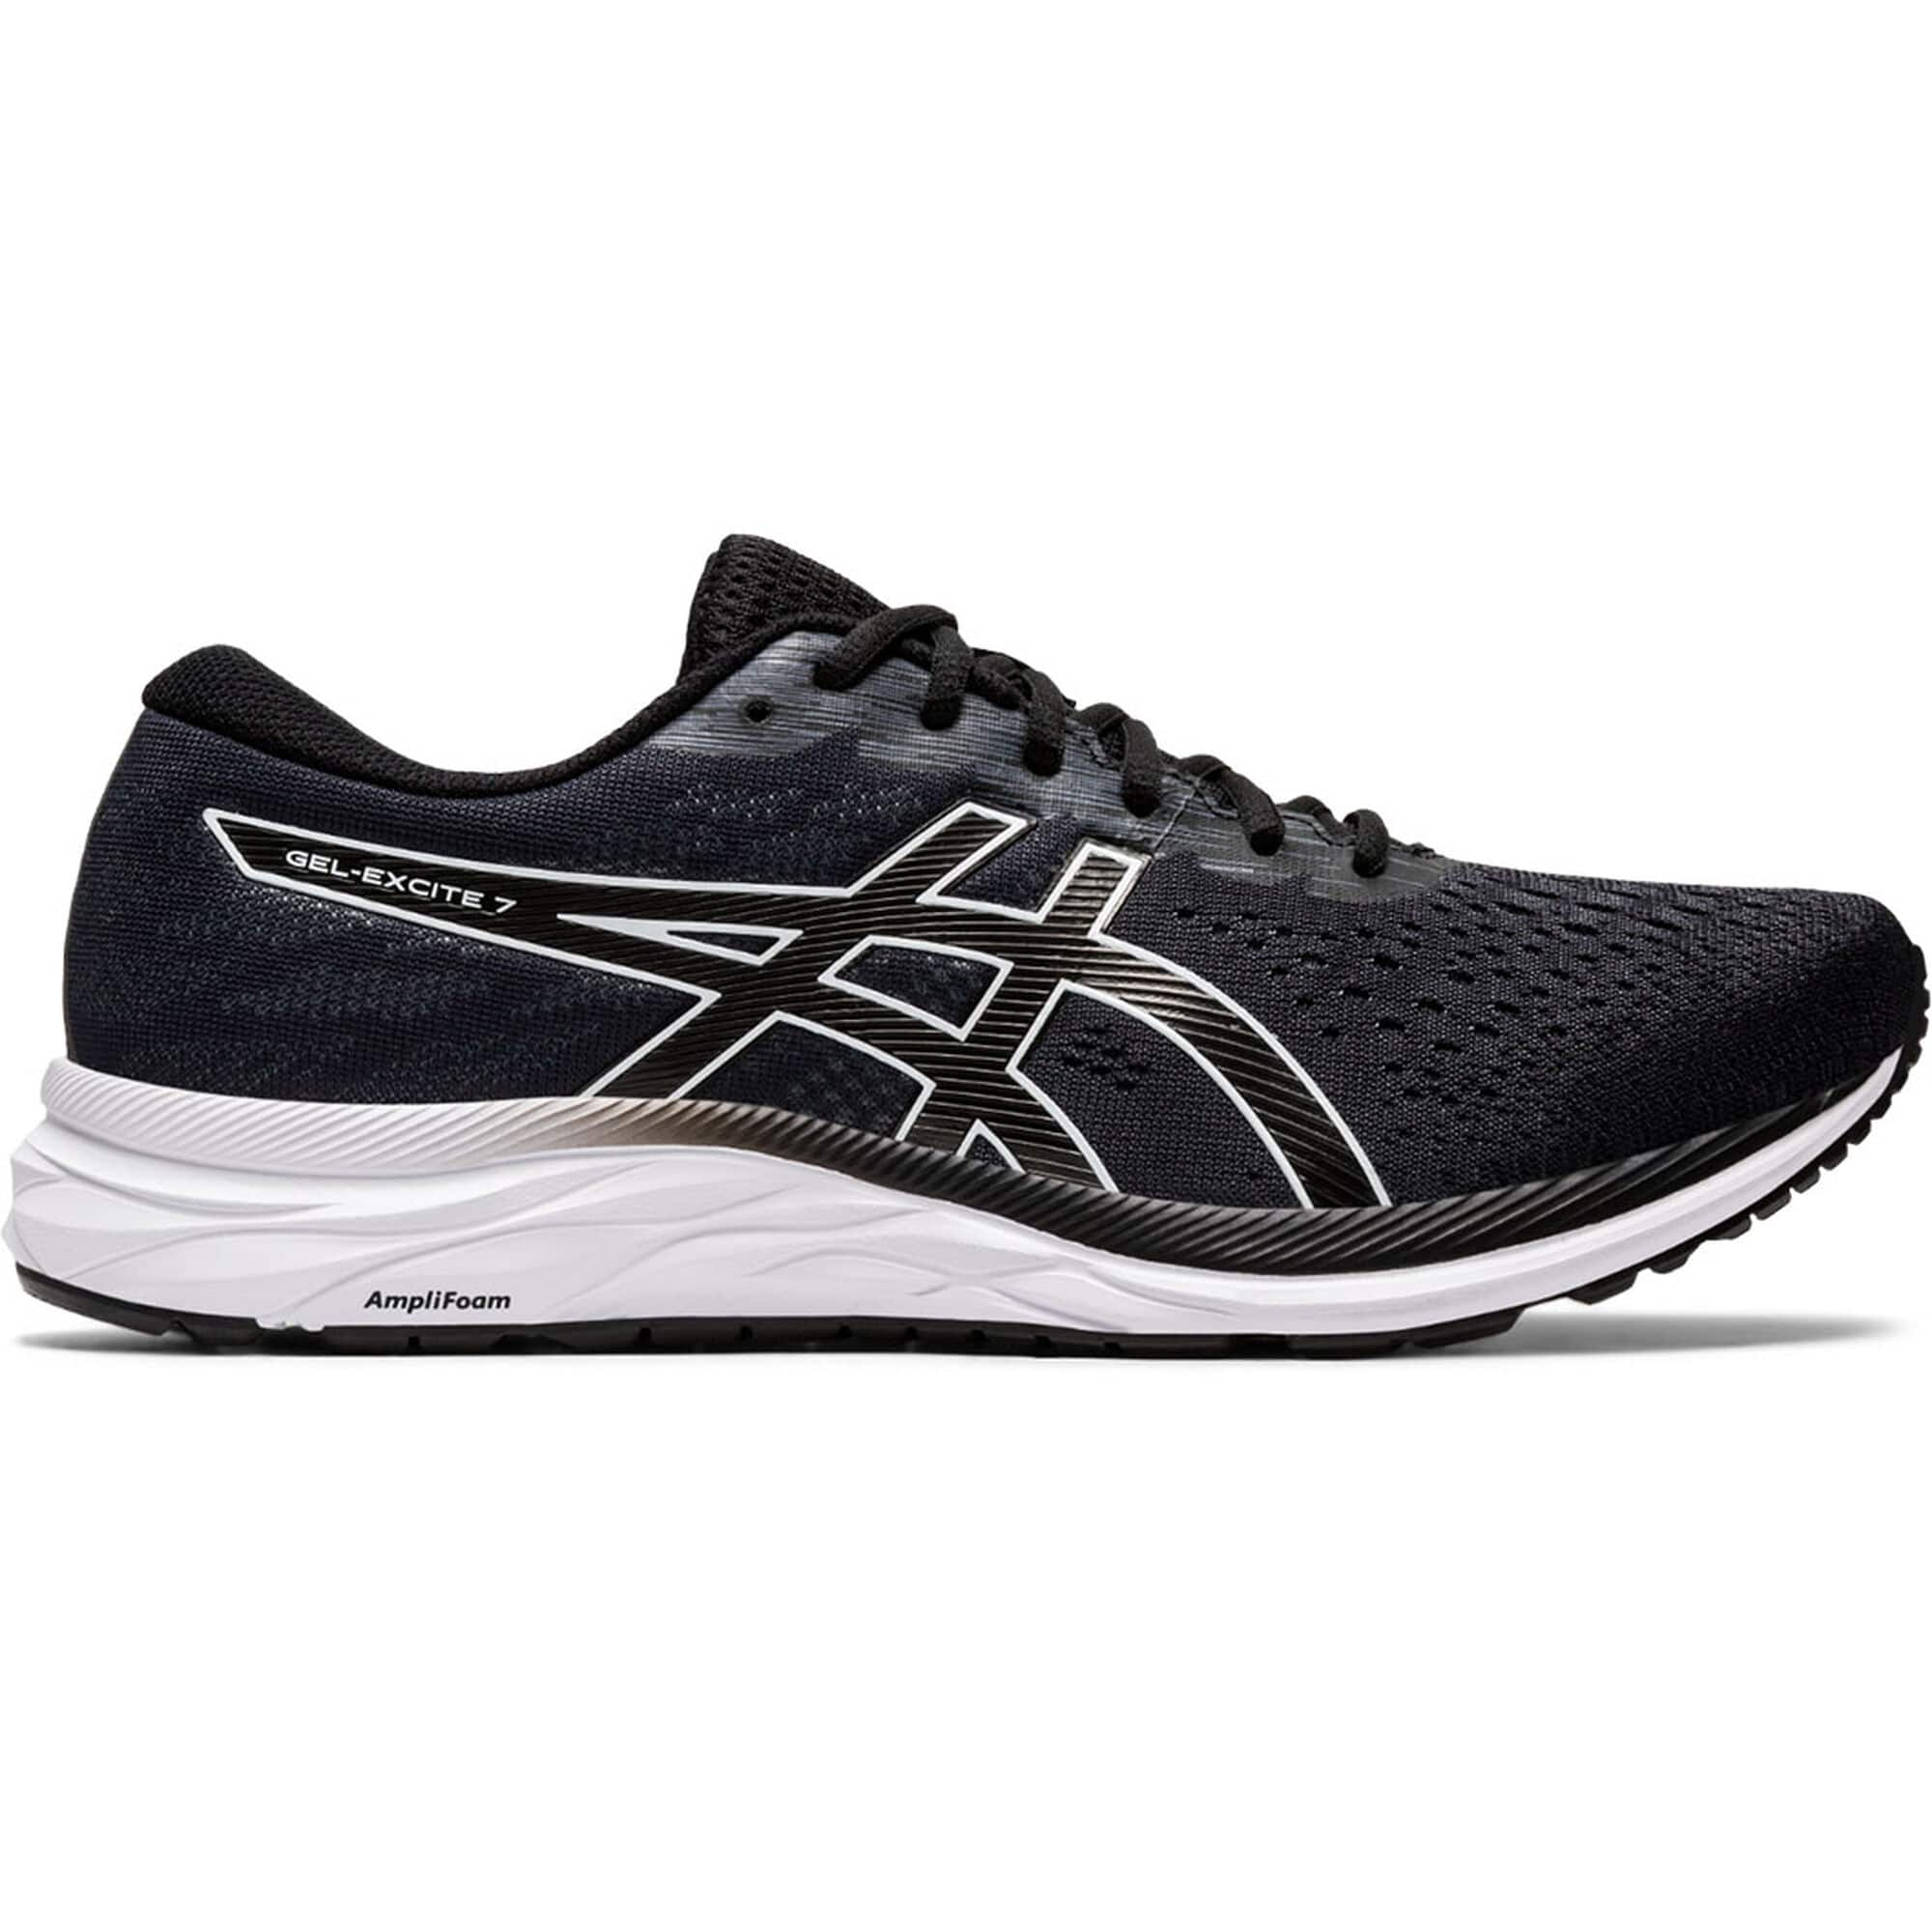 Asics Men's (Wide) or Women's GEL Excite 7 Running Shoes